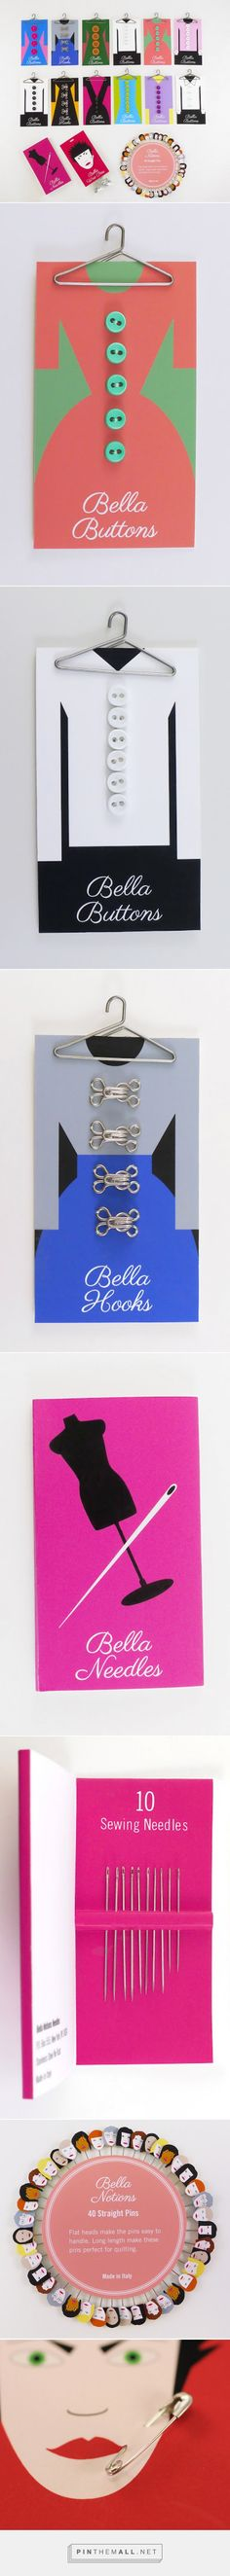 Bella Sewing Notions // Packaging Design for buttons, hooks, needles, sewing notions and pins.